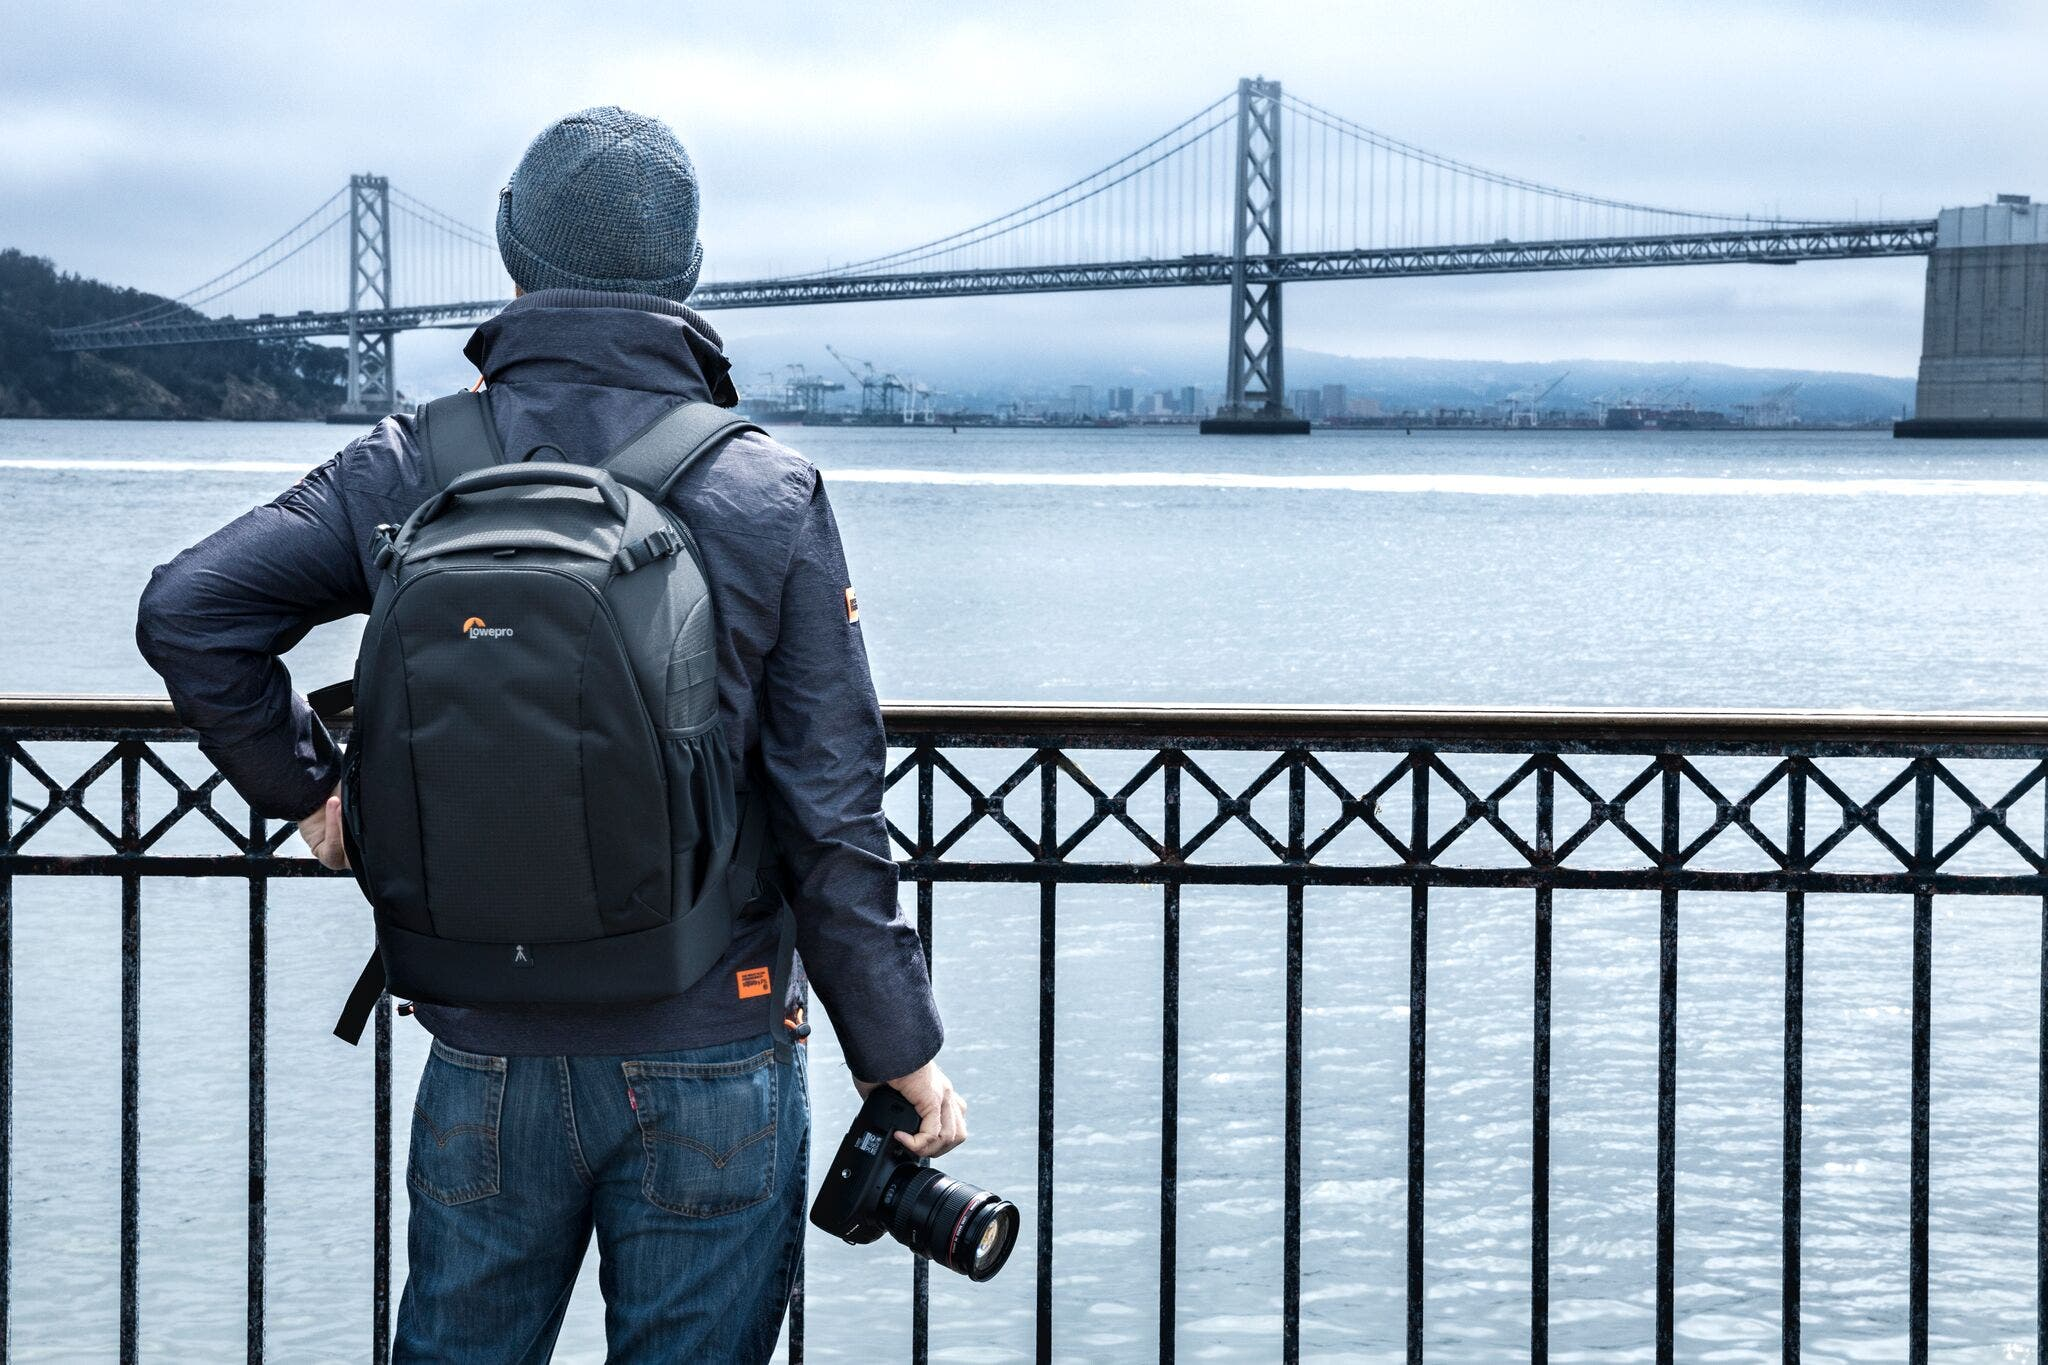 Lowepro's Latest Nova and Flipside Series Bags Accommodate the Outdoor Photographer